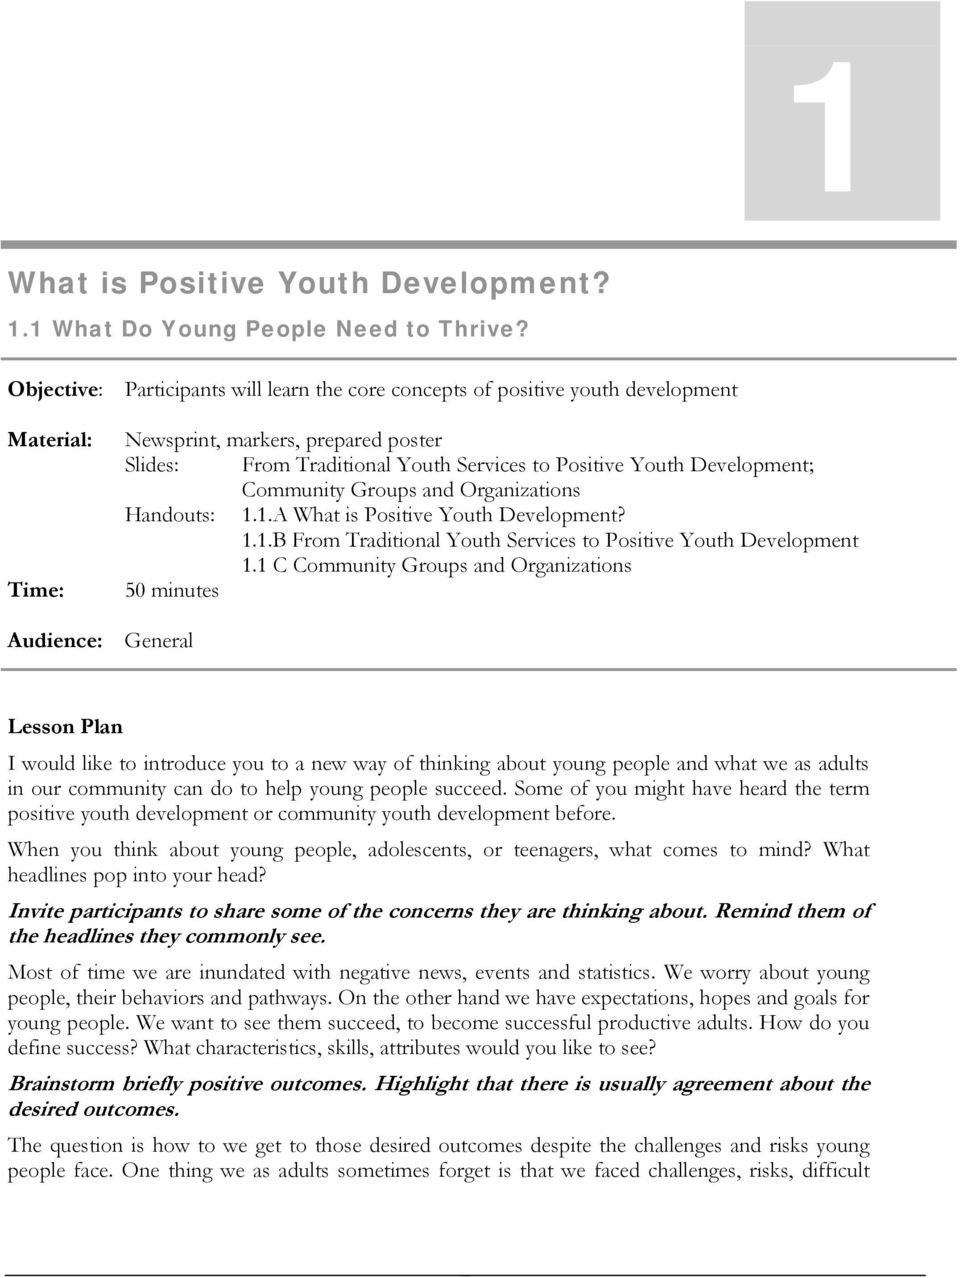 Development; Community Groups and Organizations Handouts: 1.1.A What is Positive Youth Development? 1.1.B From Traditional Youth Services to Positive Youth Development 1.